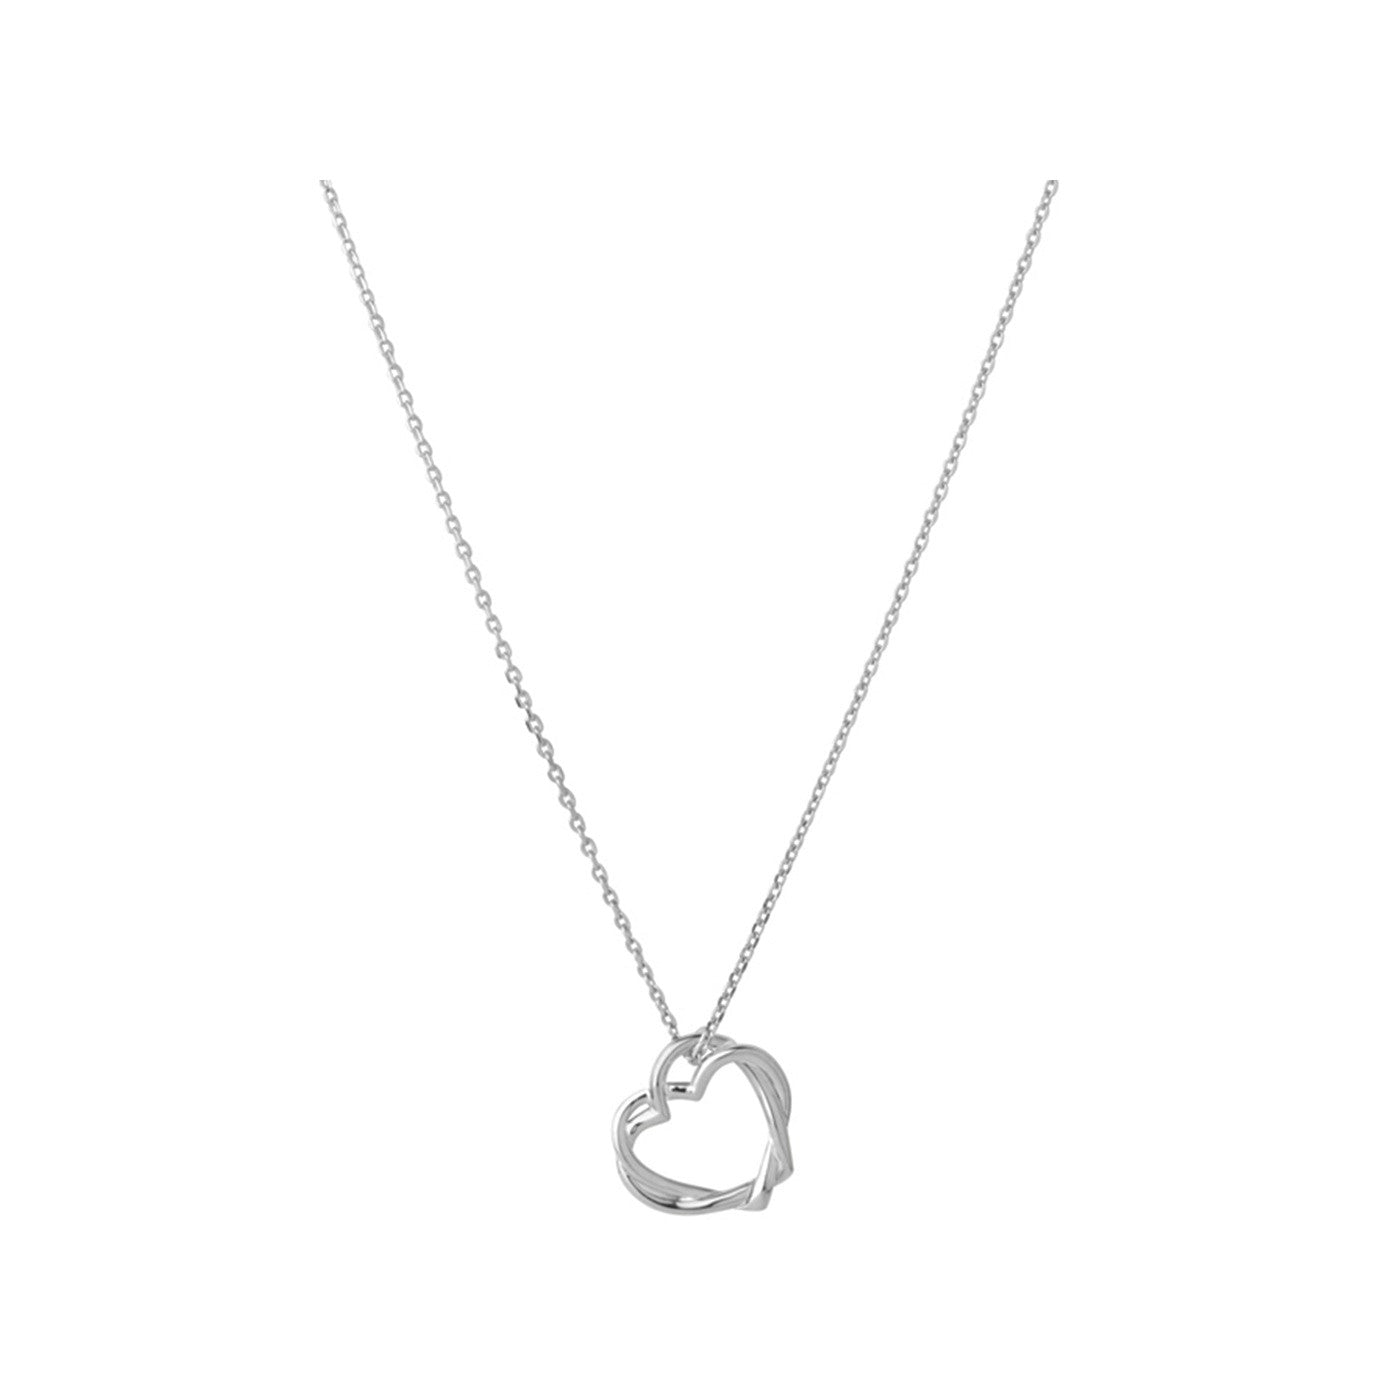 Links of London Kindred Soul Pendant Necklace - 5024.1309